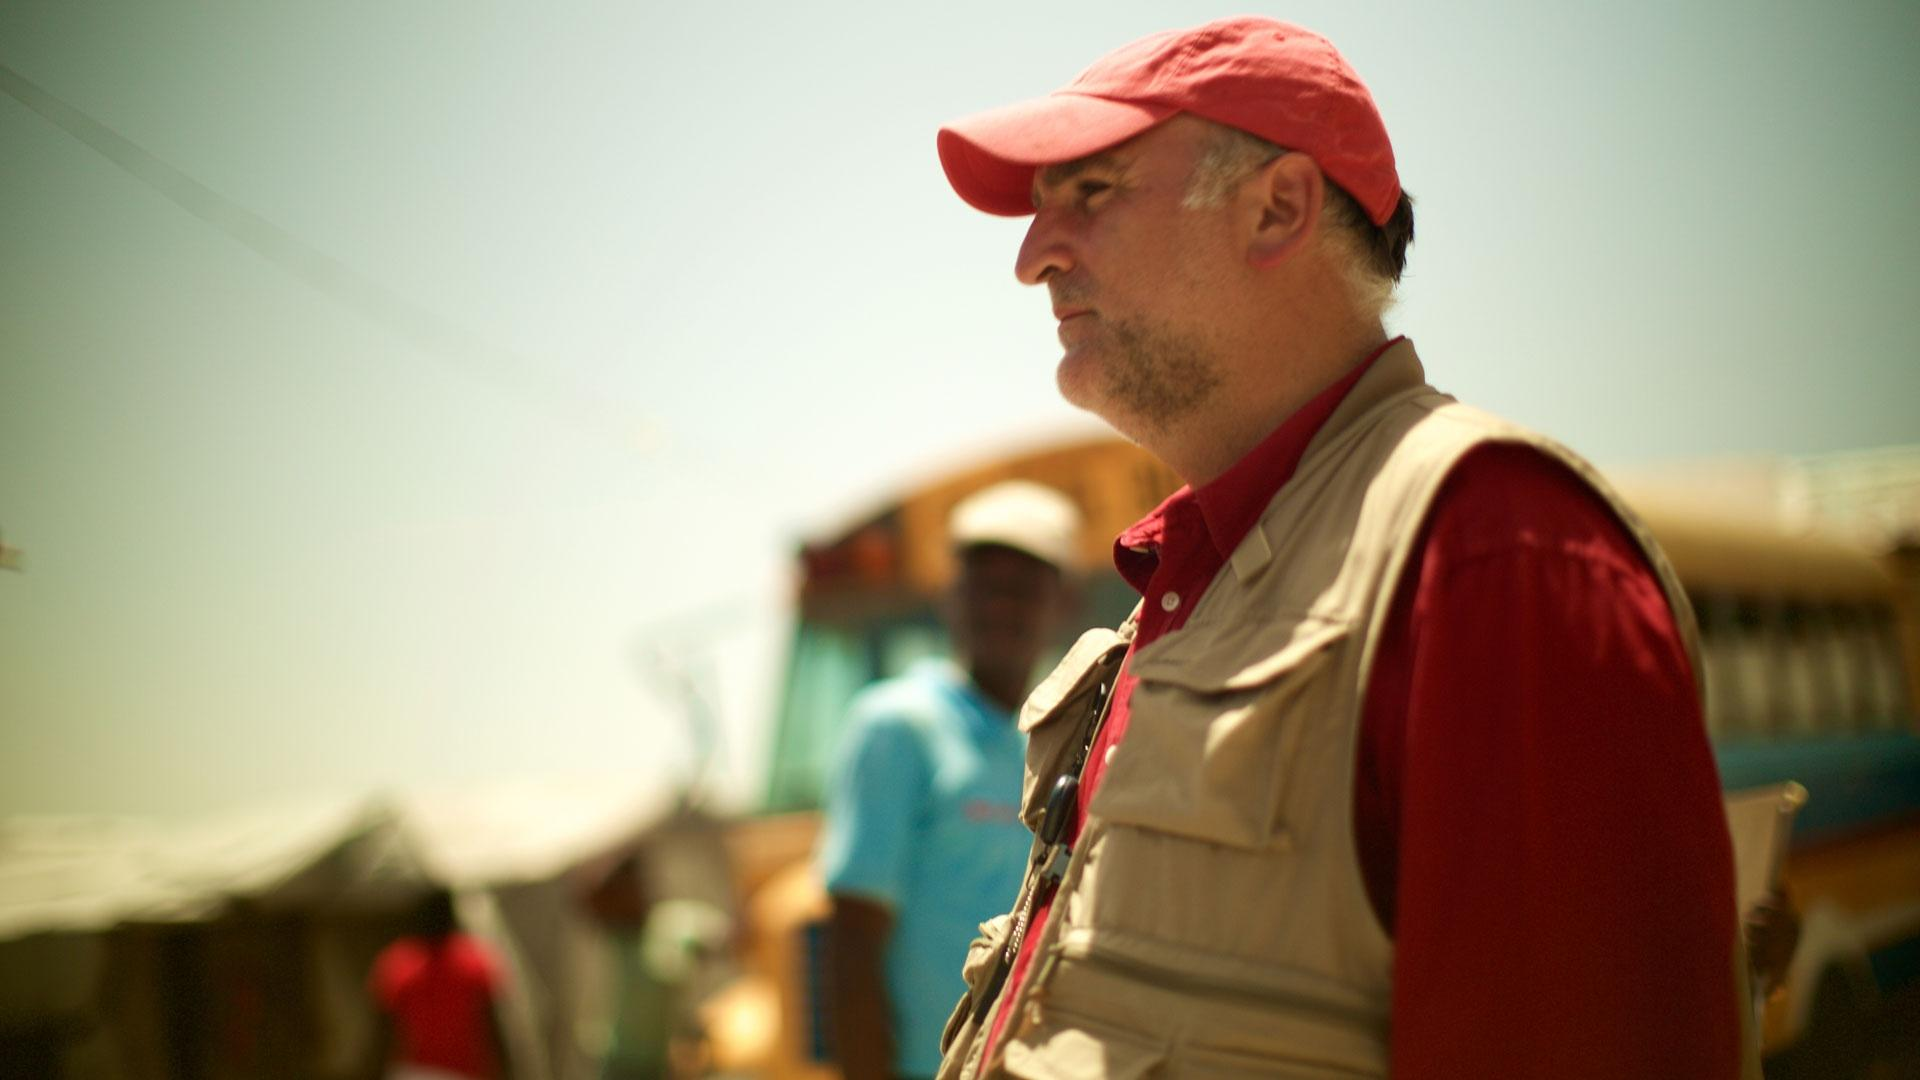 Full Episode: Undiscovered Haiti with José Andres